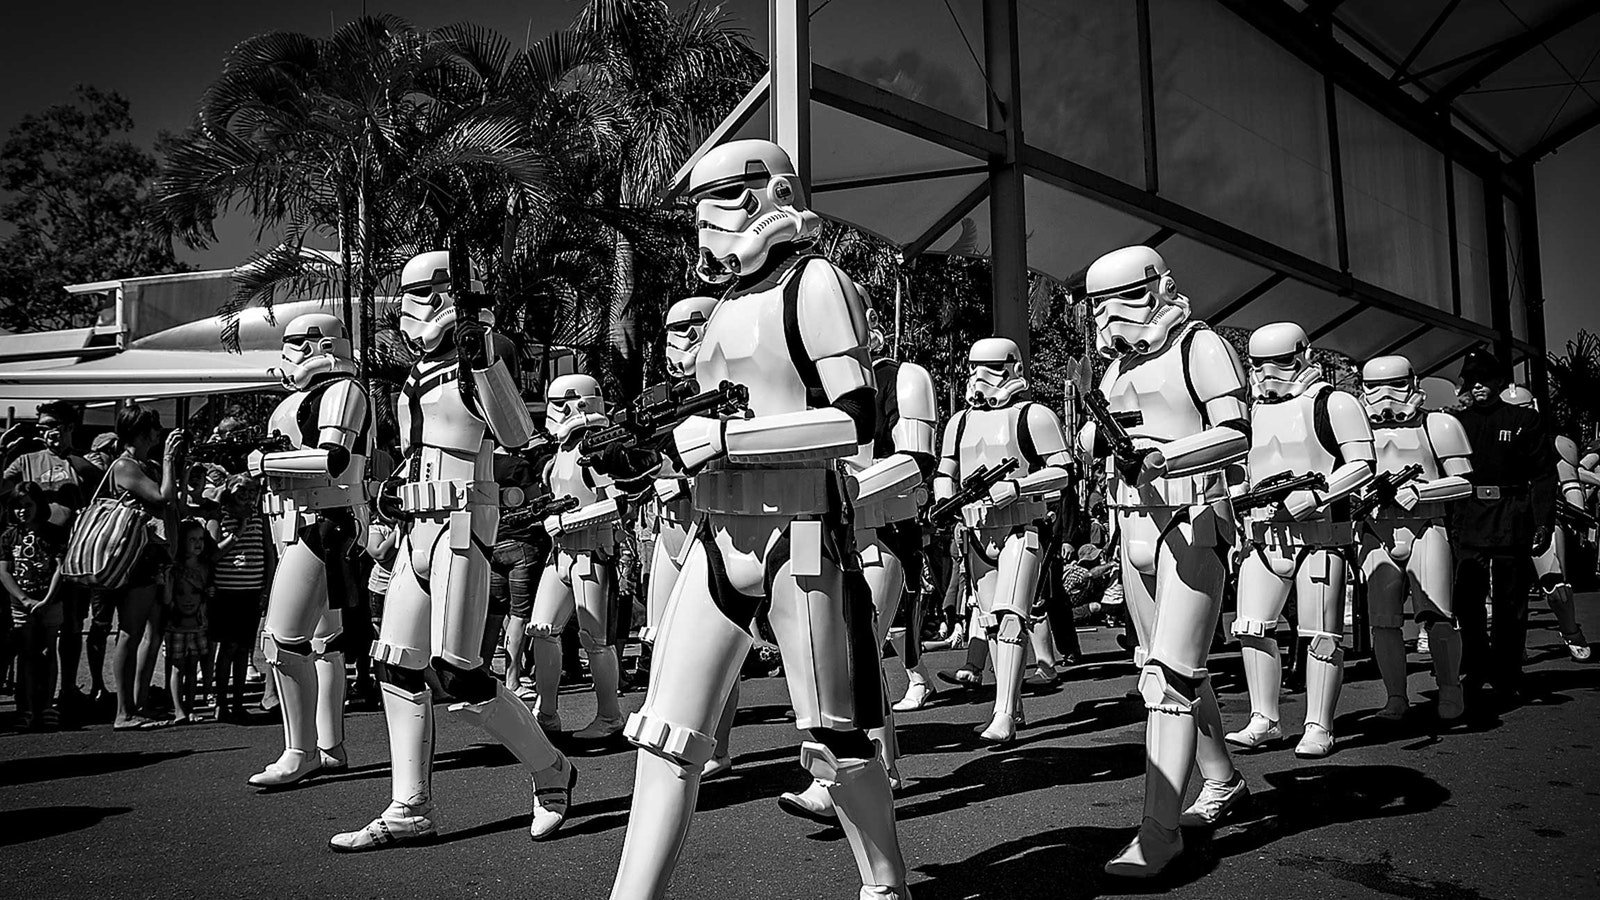 Stormtroopers Weekend at Dreamworld